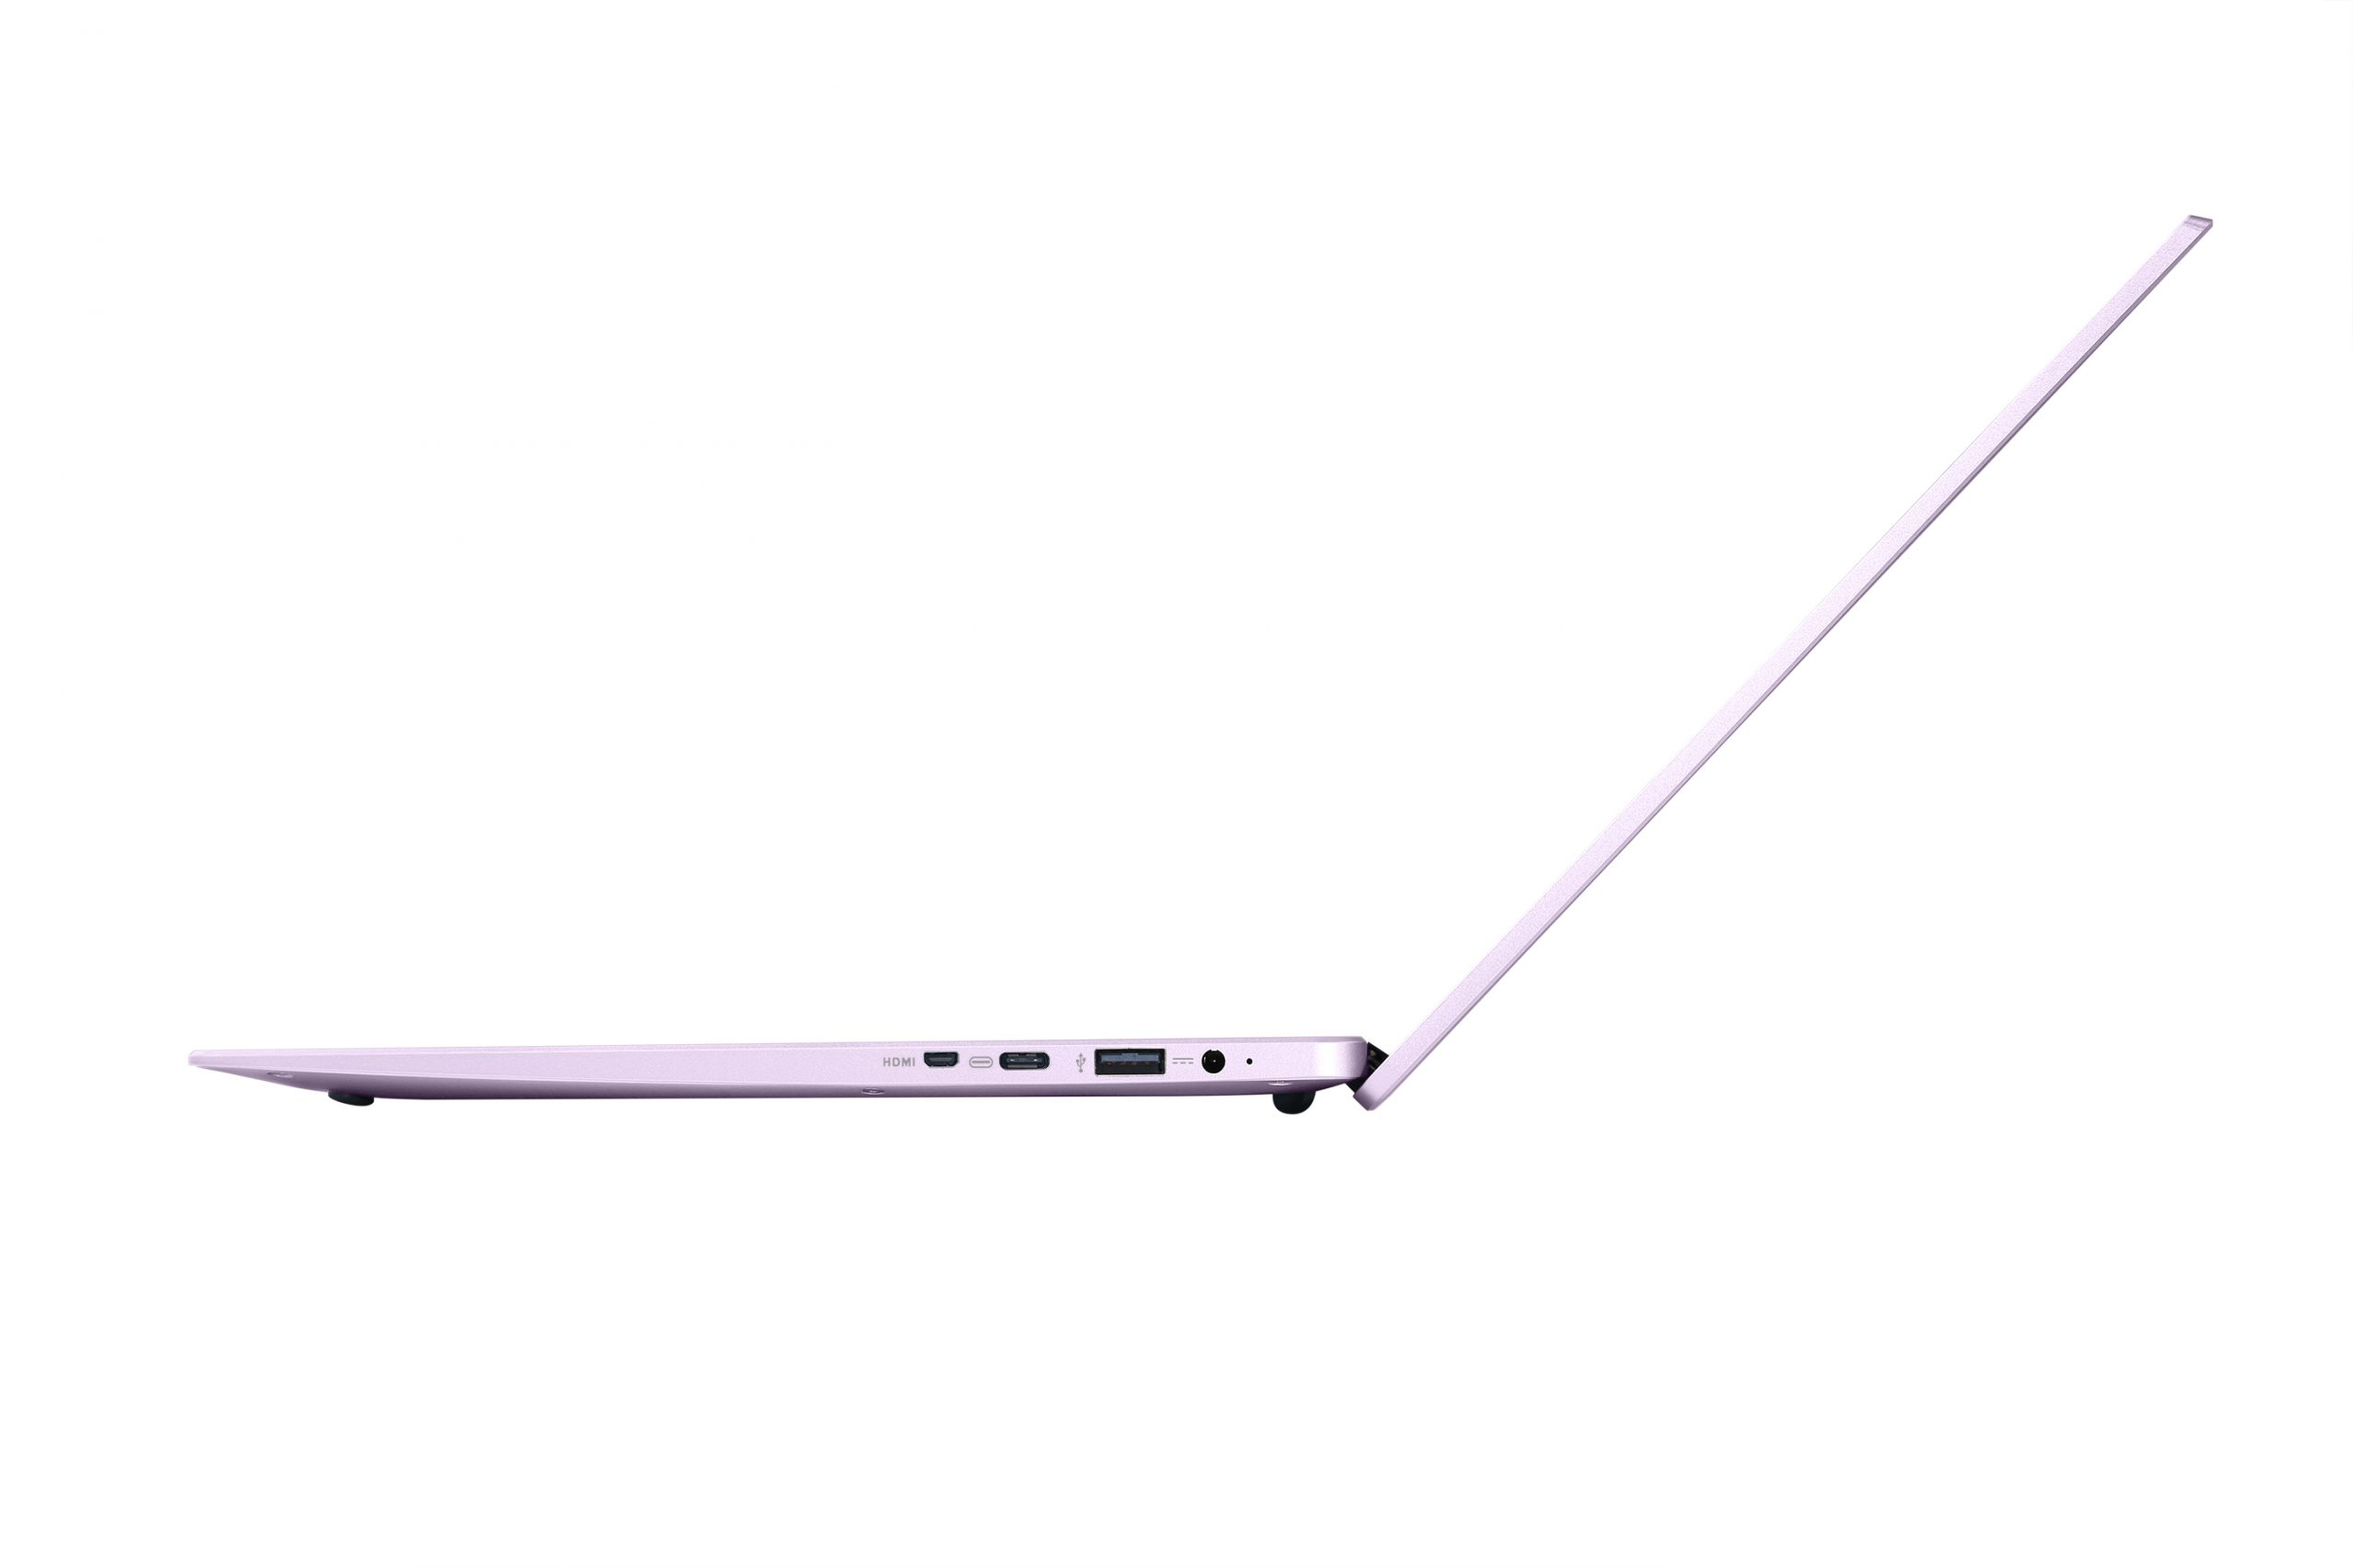 https://t2qwifi.com/wp-content/uploads/2020/07/avita_laptop_2020_angle10_0021_high_fragrant-lilac-scaled.jpg